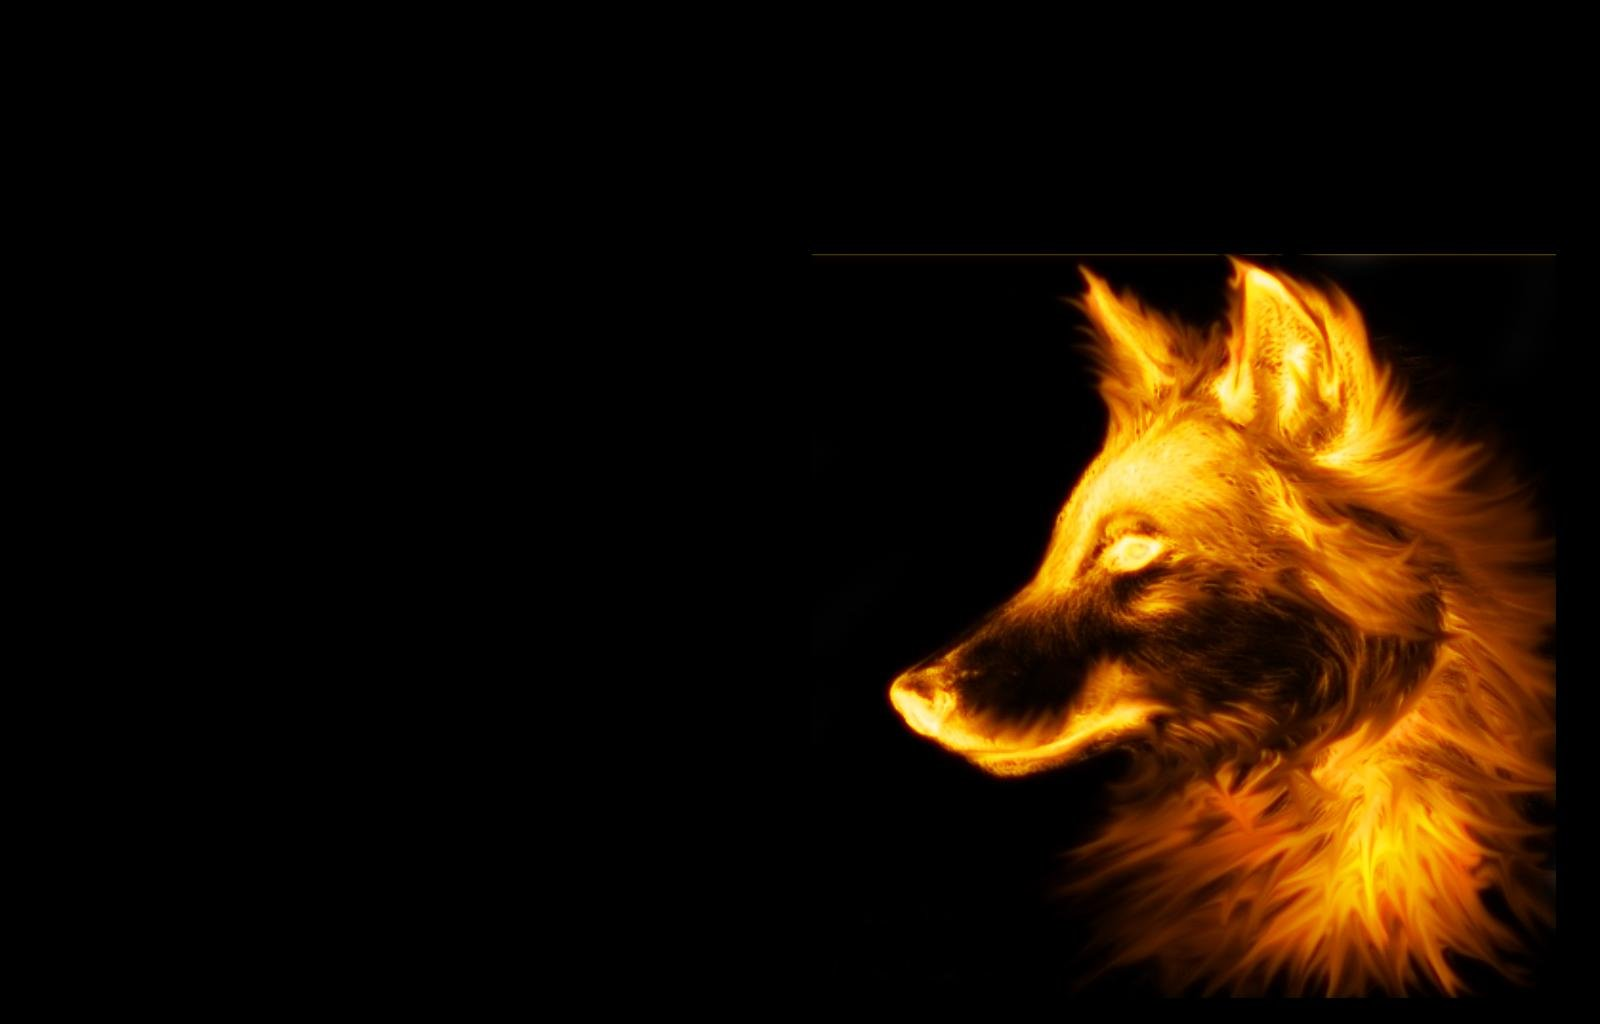 Fire Wolf Wallpaper 1600x1024 Fire Wolf Black Background 1600x1024